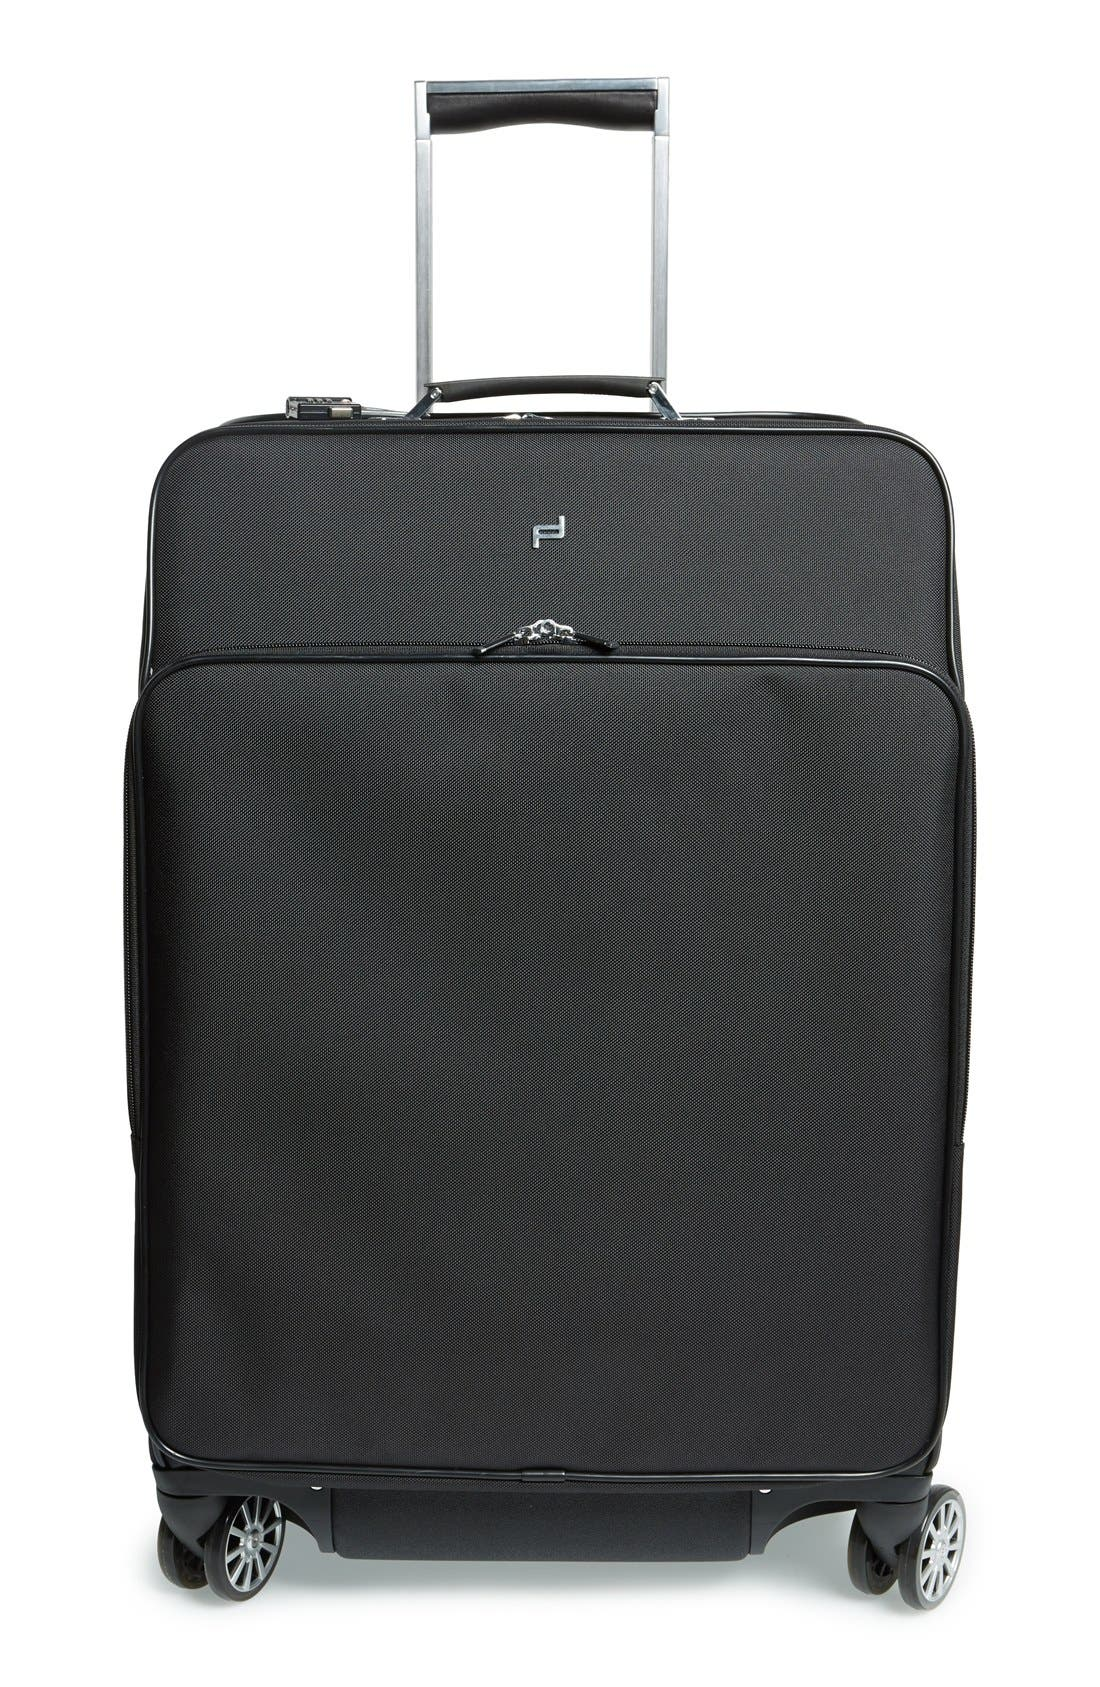 PORSCHE DESIGN Roadster 3.0 Wheeled Suitcase